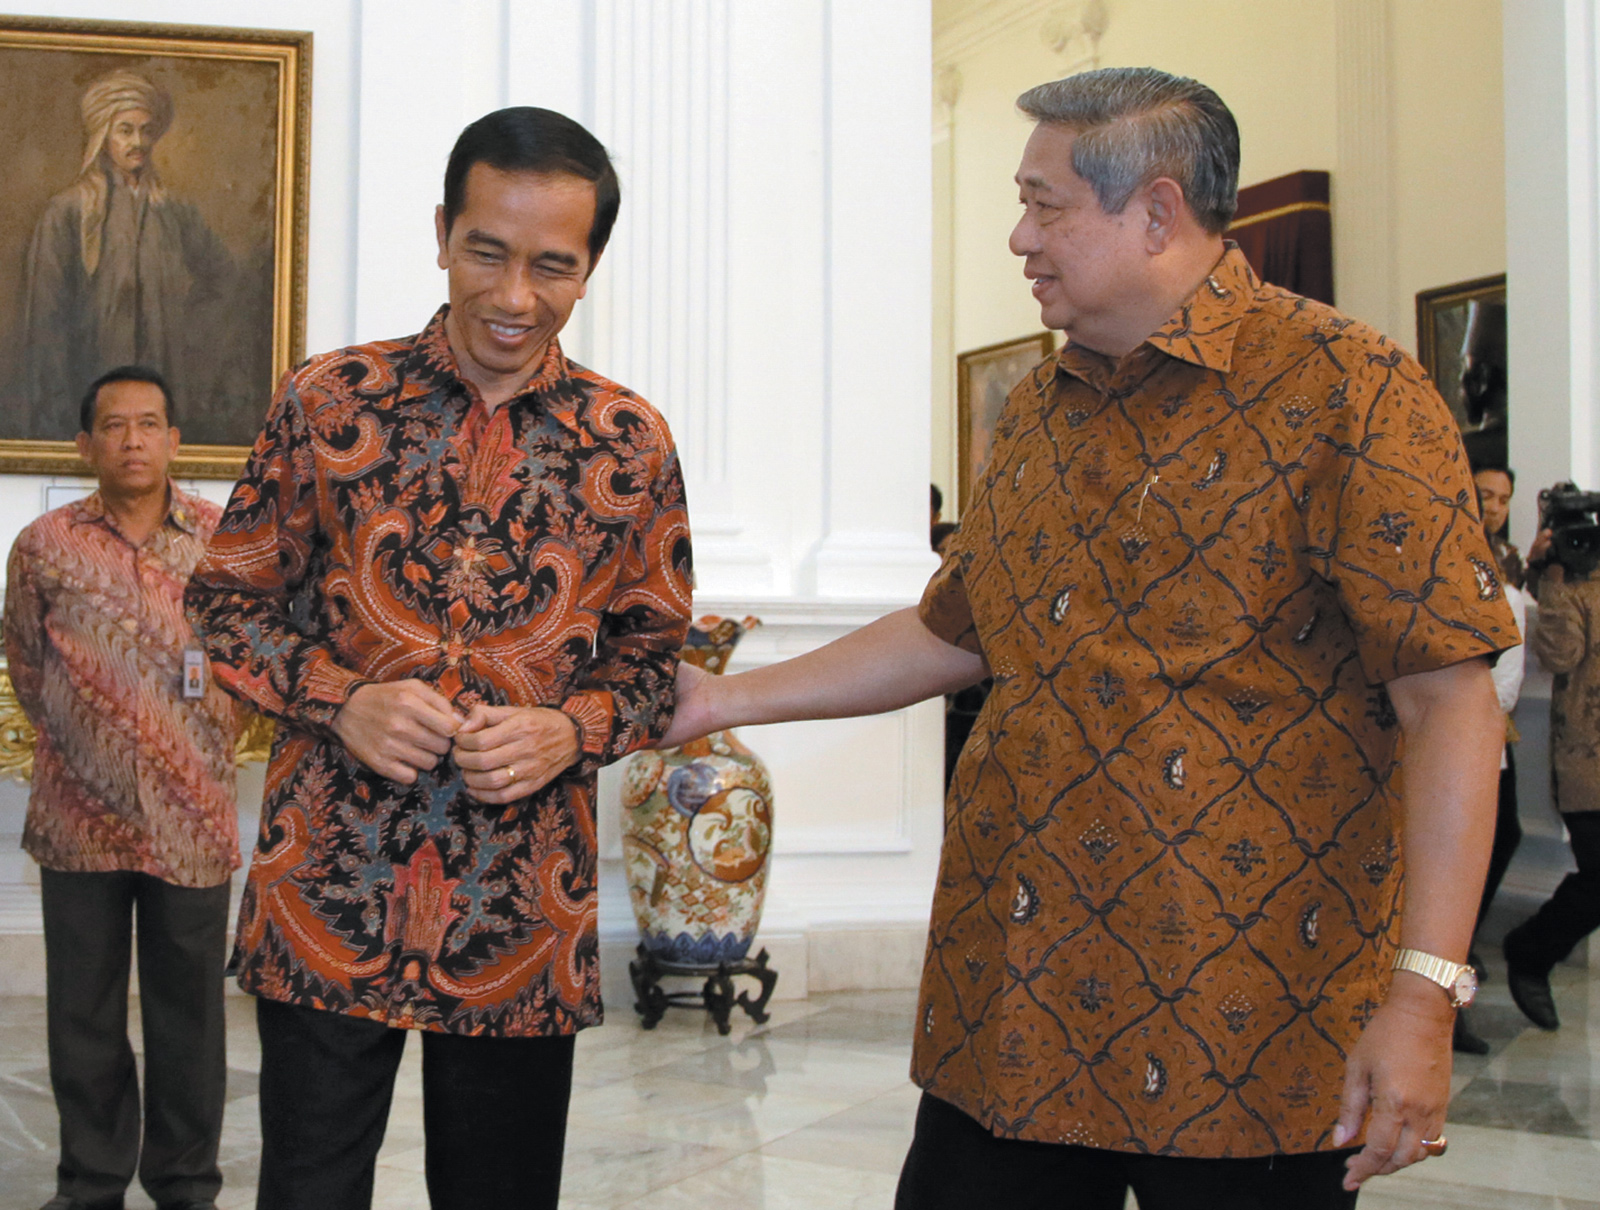 Indonesian President-Elect Joko Widodo (left) receiving a tour of the presidential palace from President Susilo Bambang Yudhoyono the day before Widodo's inauguration, Jakarta, October 2014